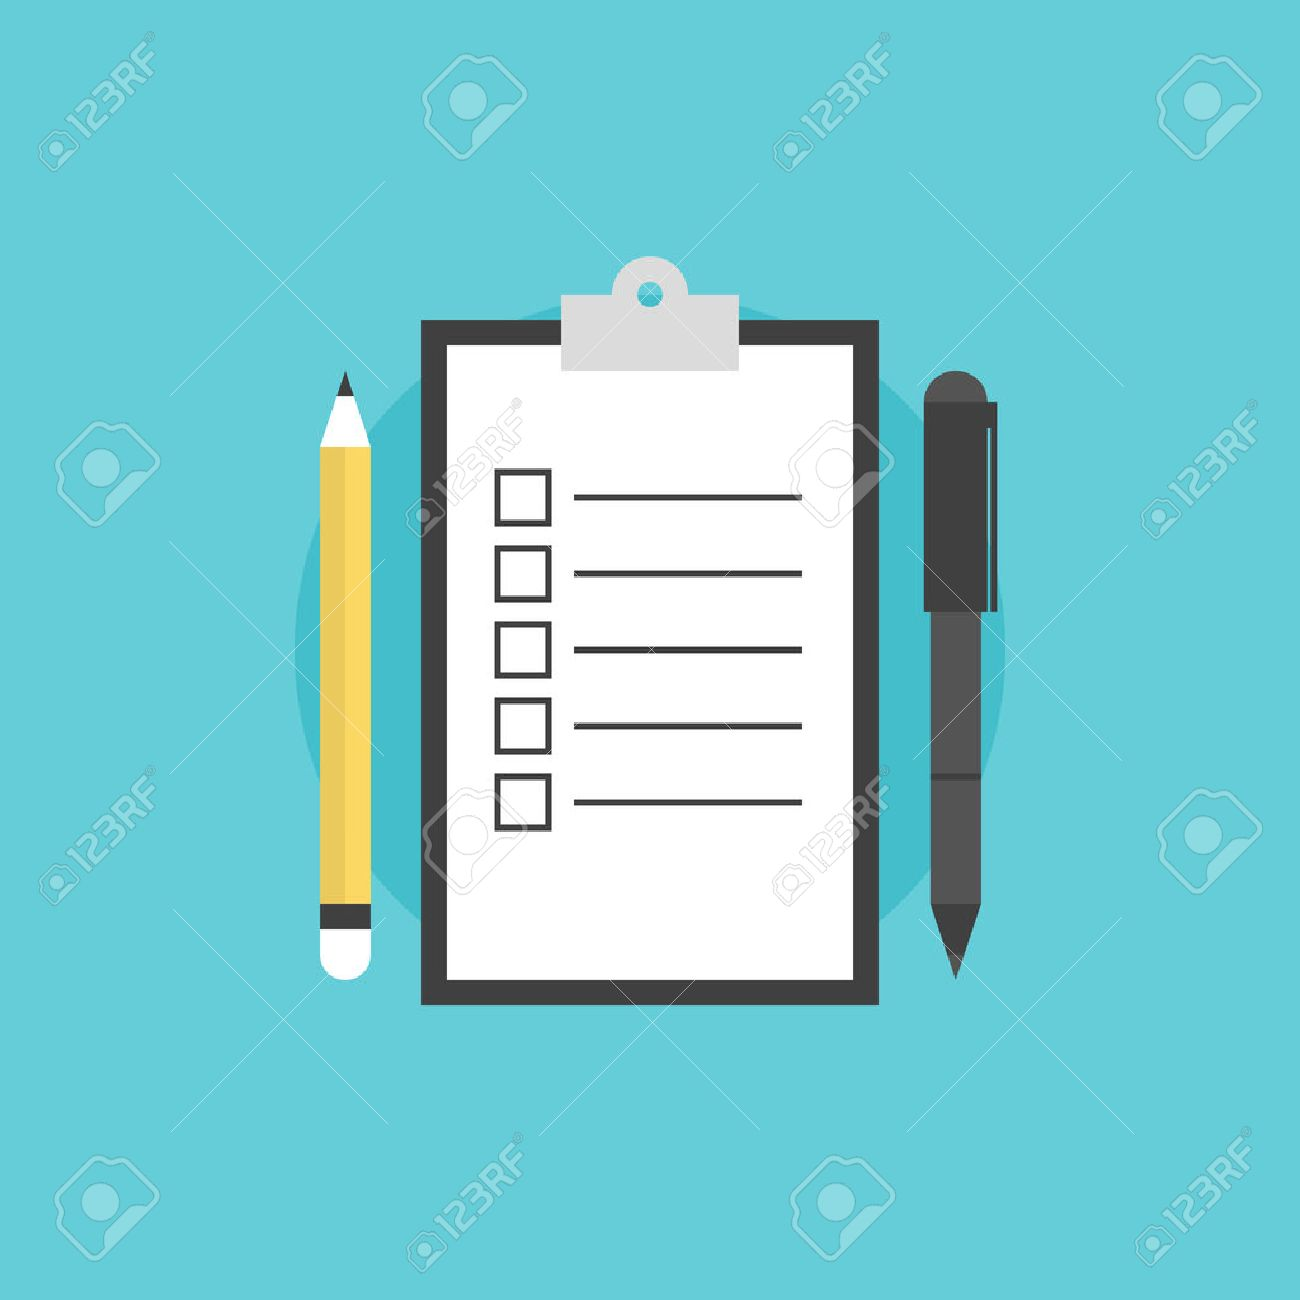 clipboard with blank checklist form to do list and planning